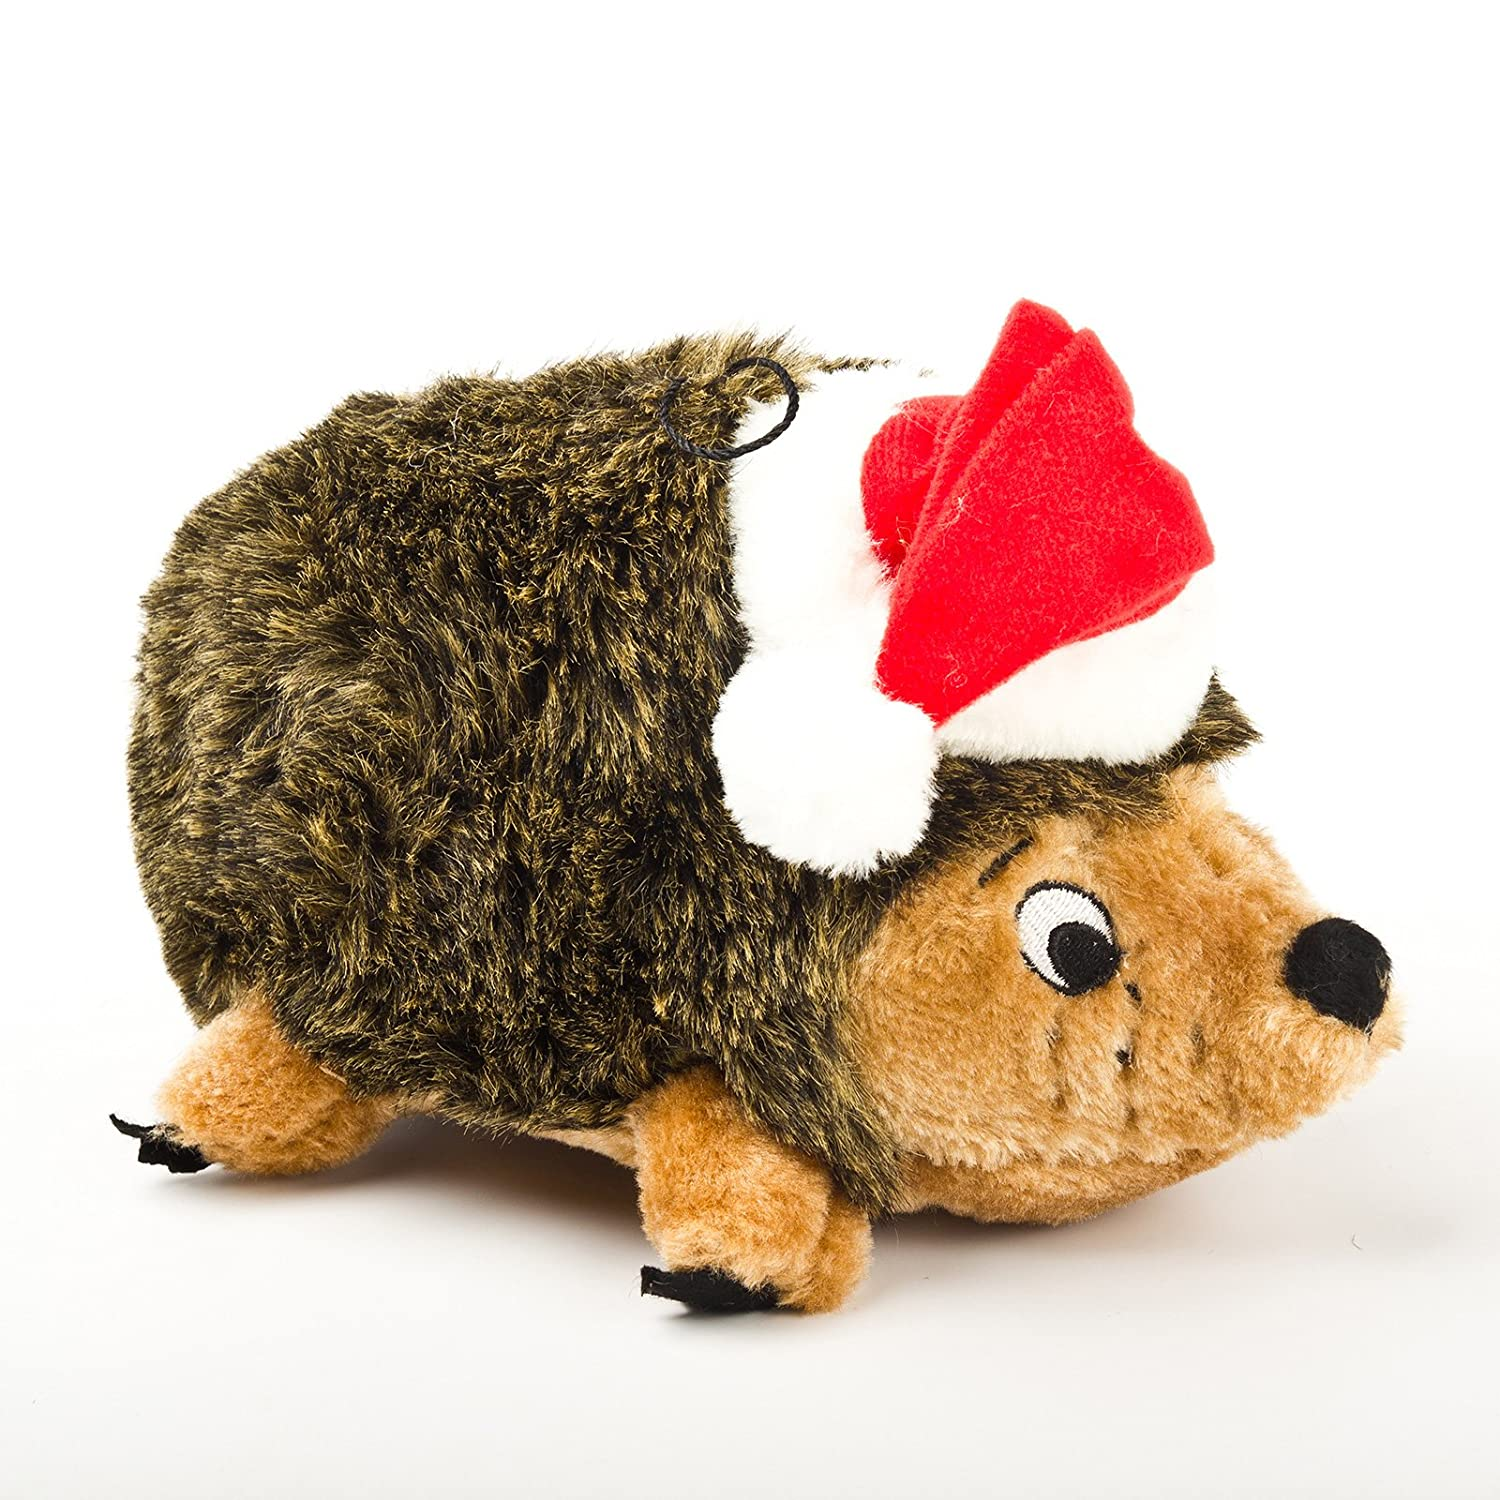 Outward Hound Holiday Hedgehog Squeaking Plush Dog Toy Holiday and Christmas Dog Toy